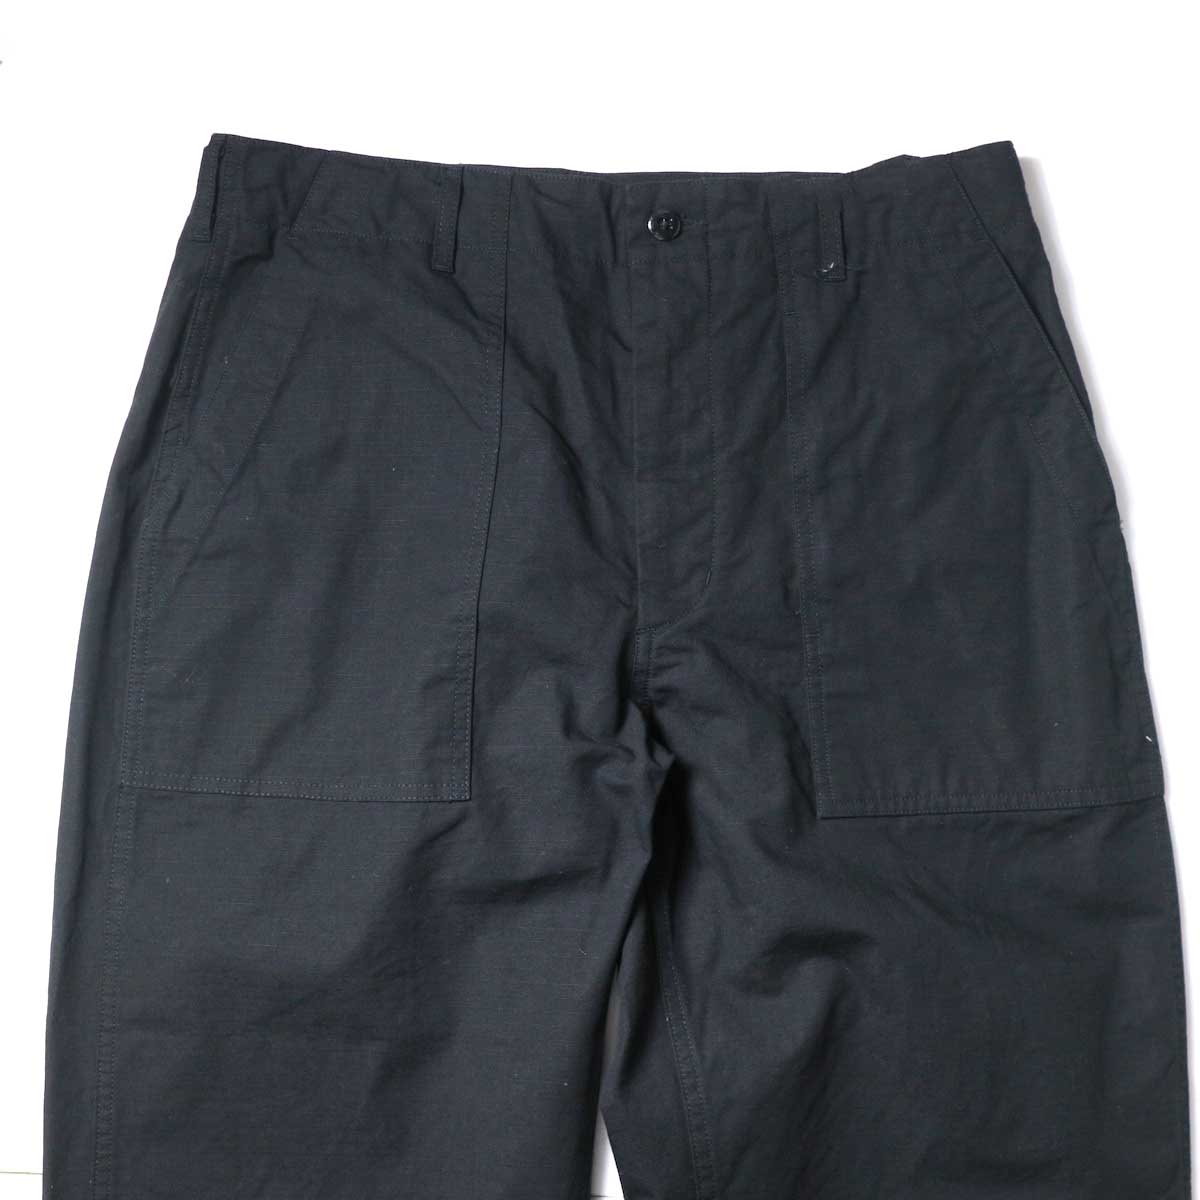 Engineered Garments / Fatigue Pant - Cotton Ripstop (Black)ウエスト